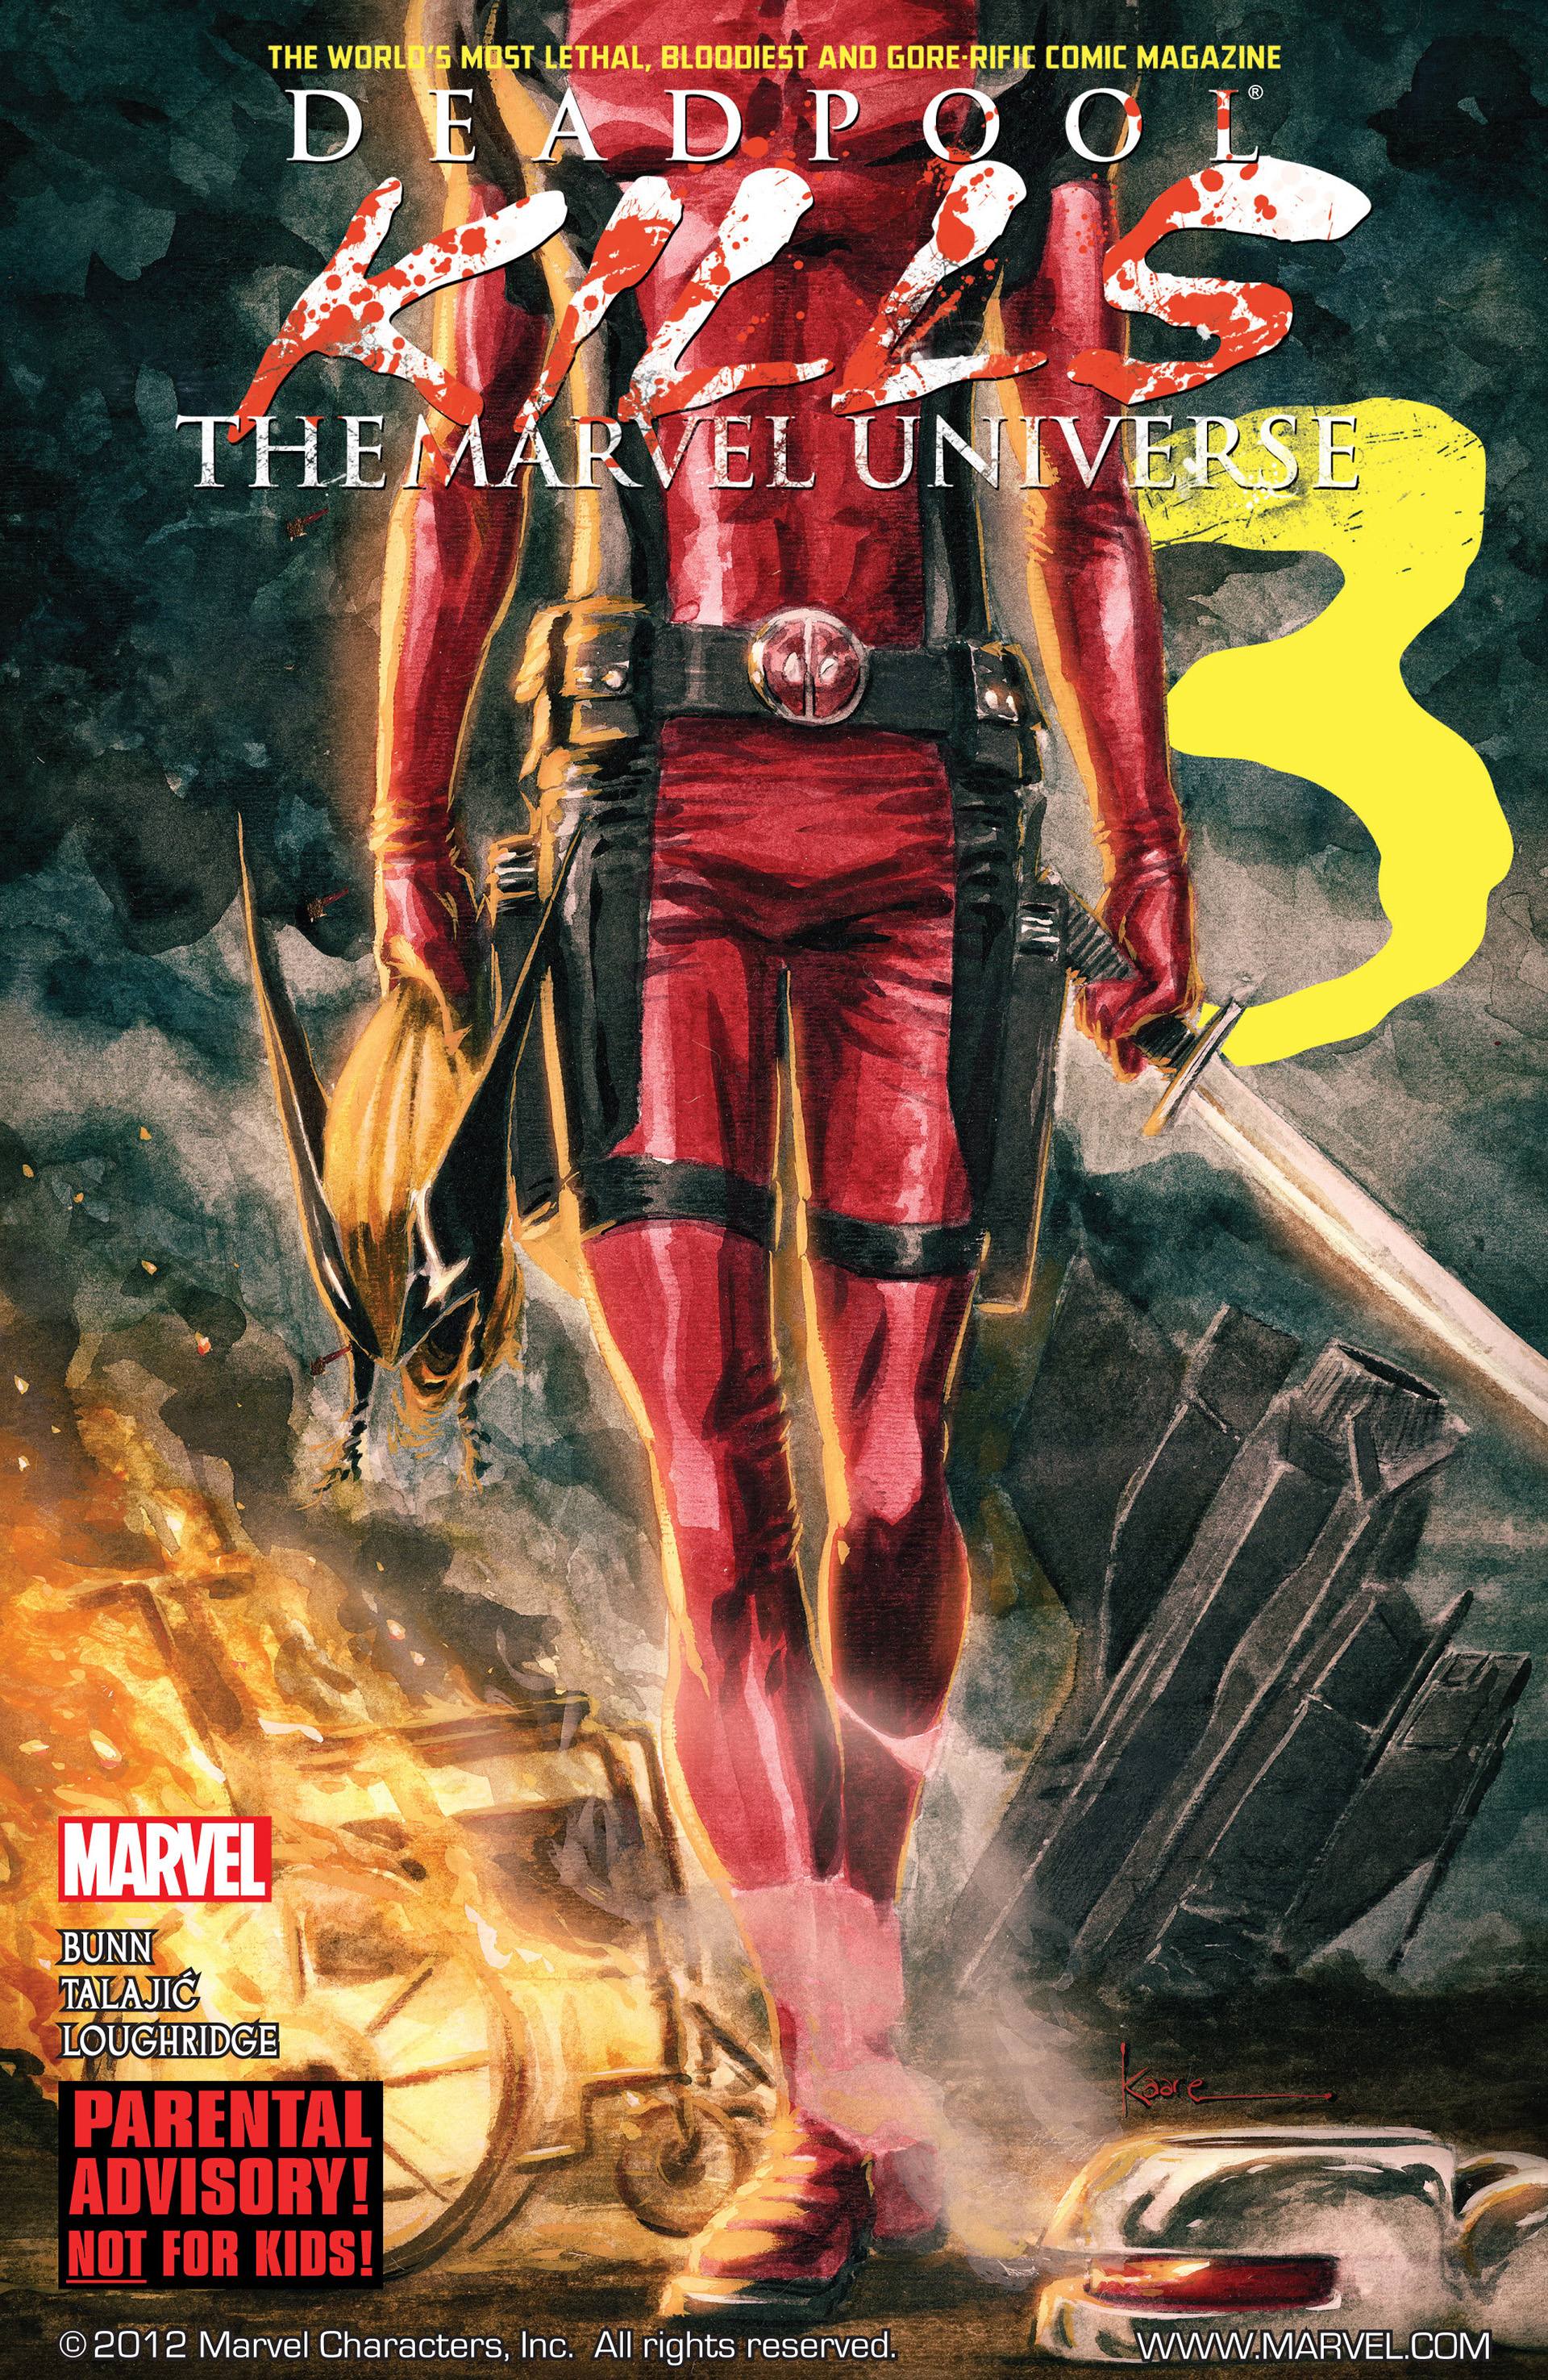 Deadpool Kills The Marvel Universe Read Deadpool Kills The Marvel Universe Comic Online In High Quality Read Full Comic Online For Free Read Comics Online In High Quality